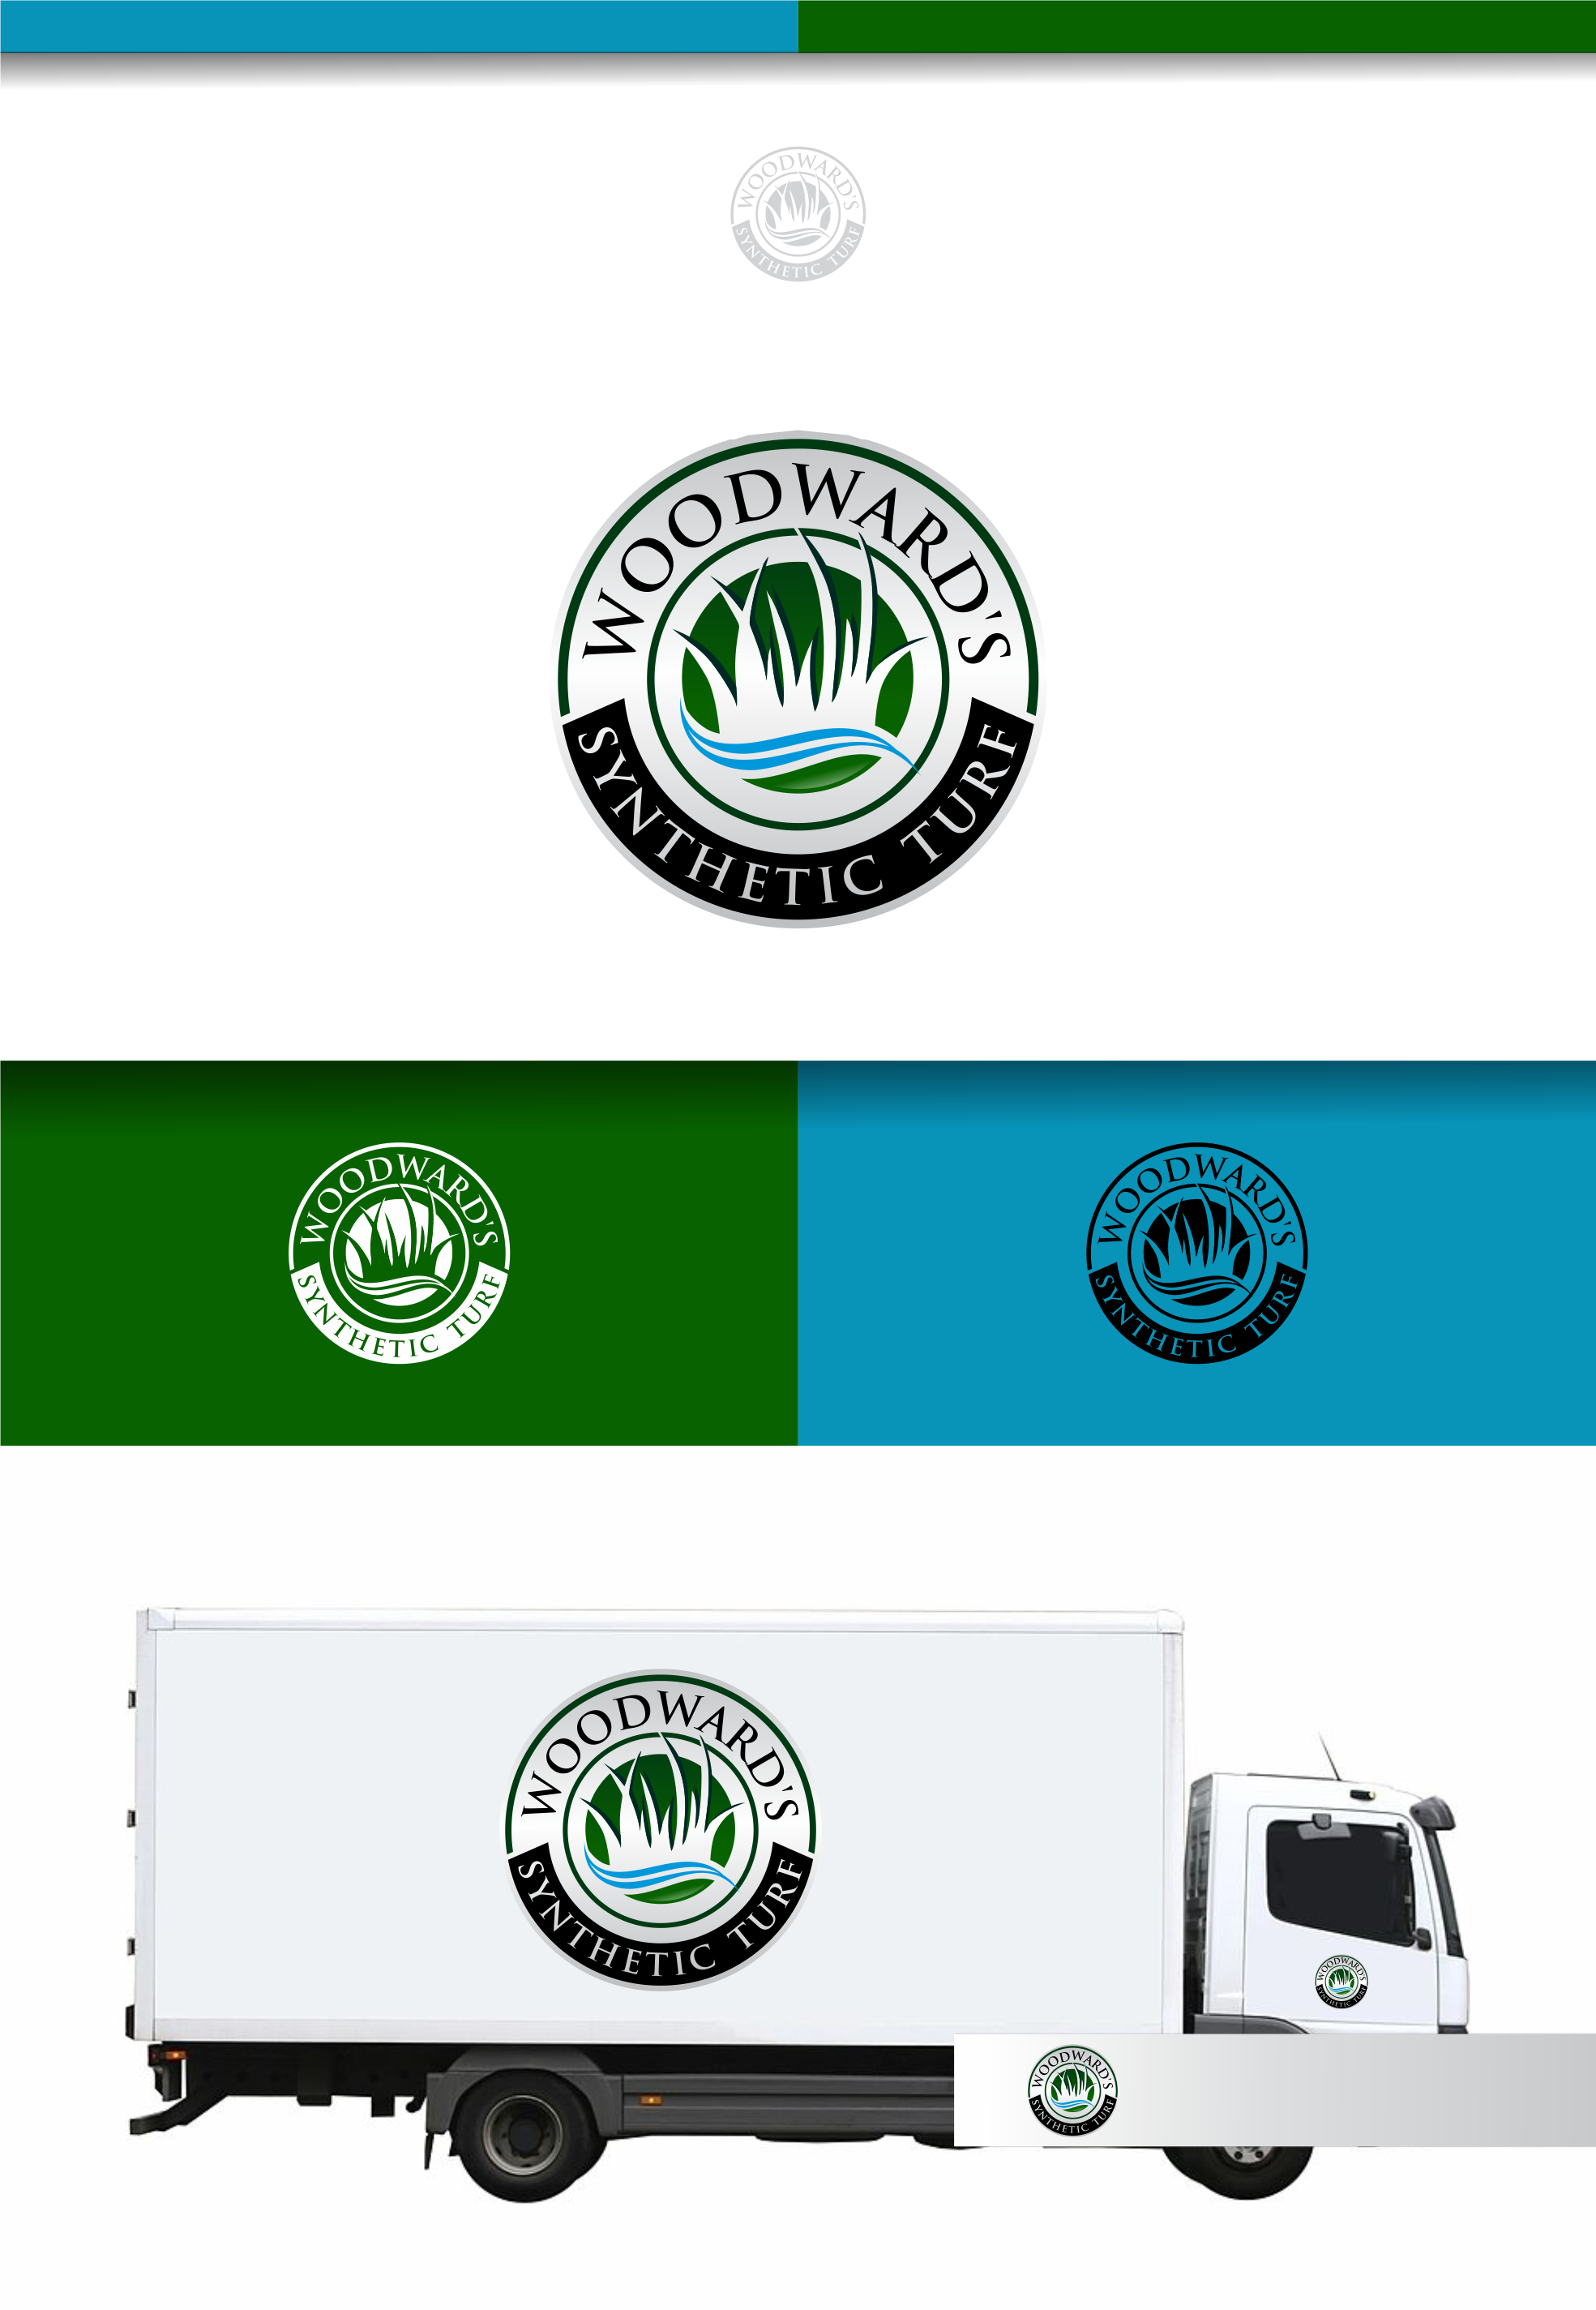 Logo Design by Raymond Garcia - Entry No. 37 in the Logo Design Contest Artistic Logo Design for Woodward's Synthetic Turf.